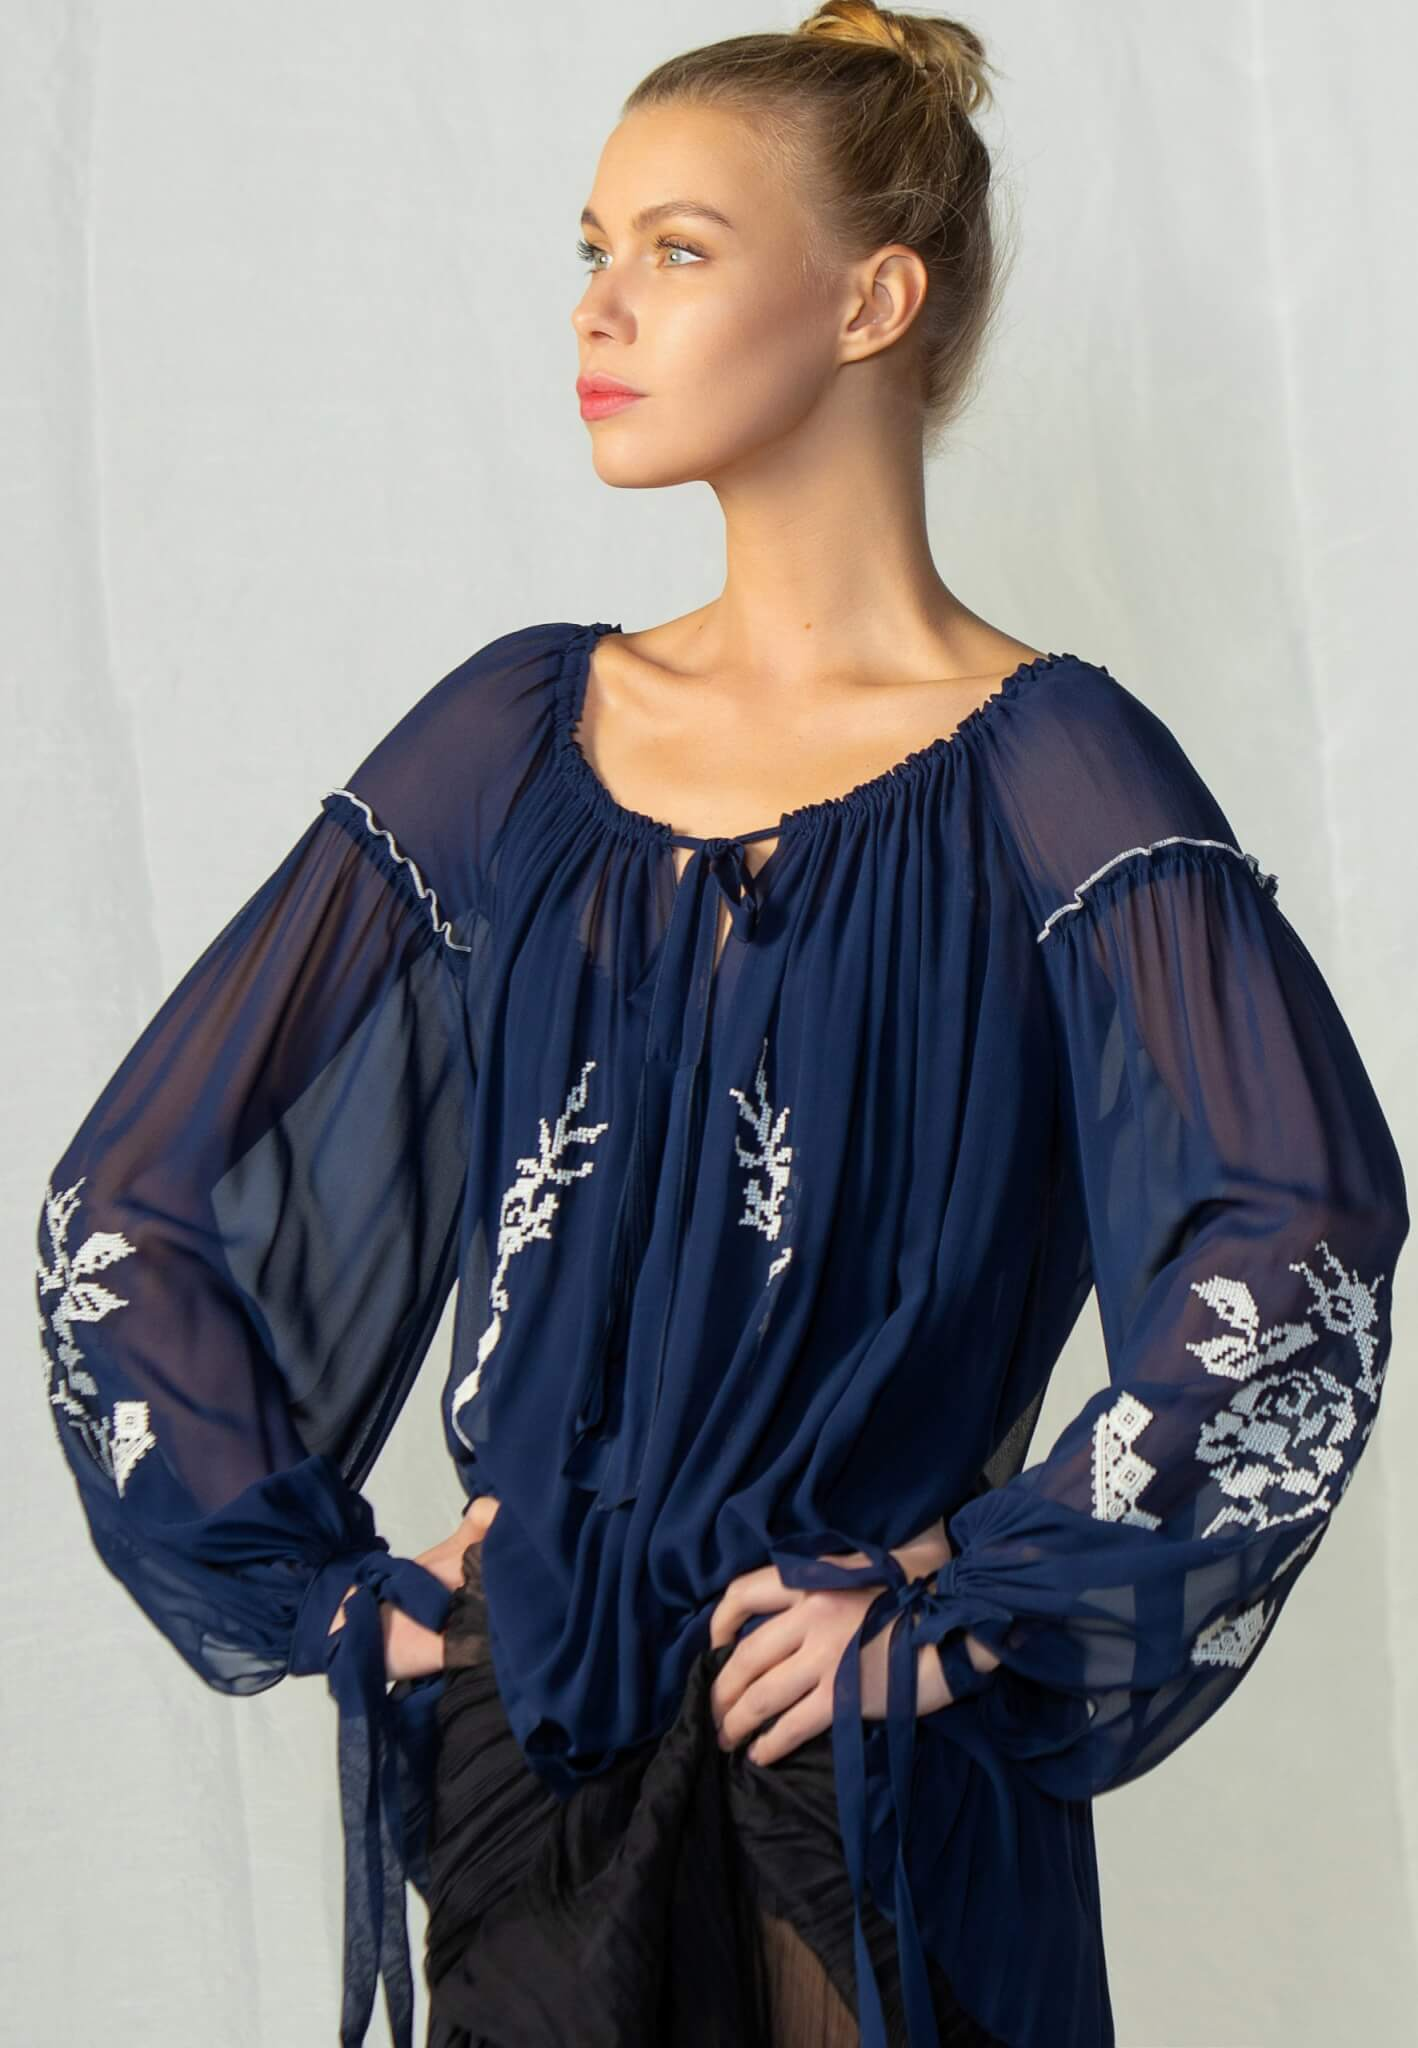 Blue silk blouse with embroidery